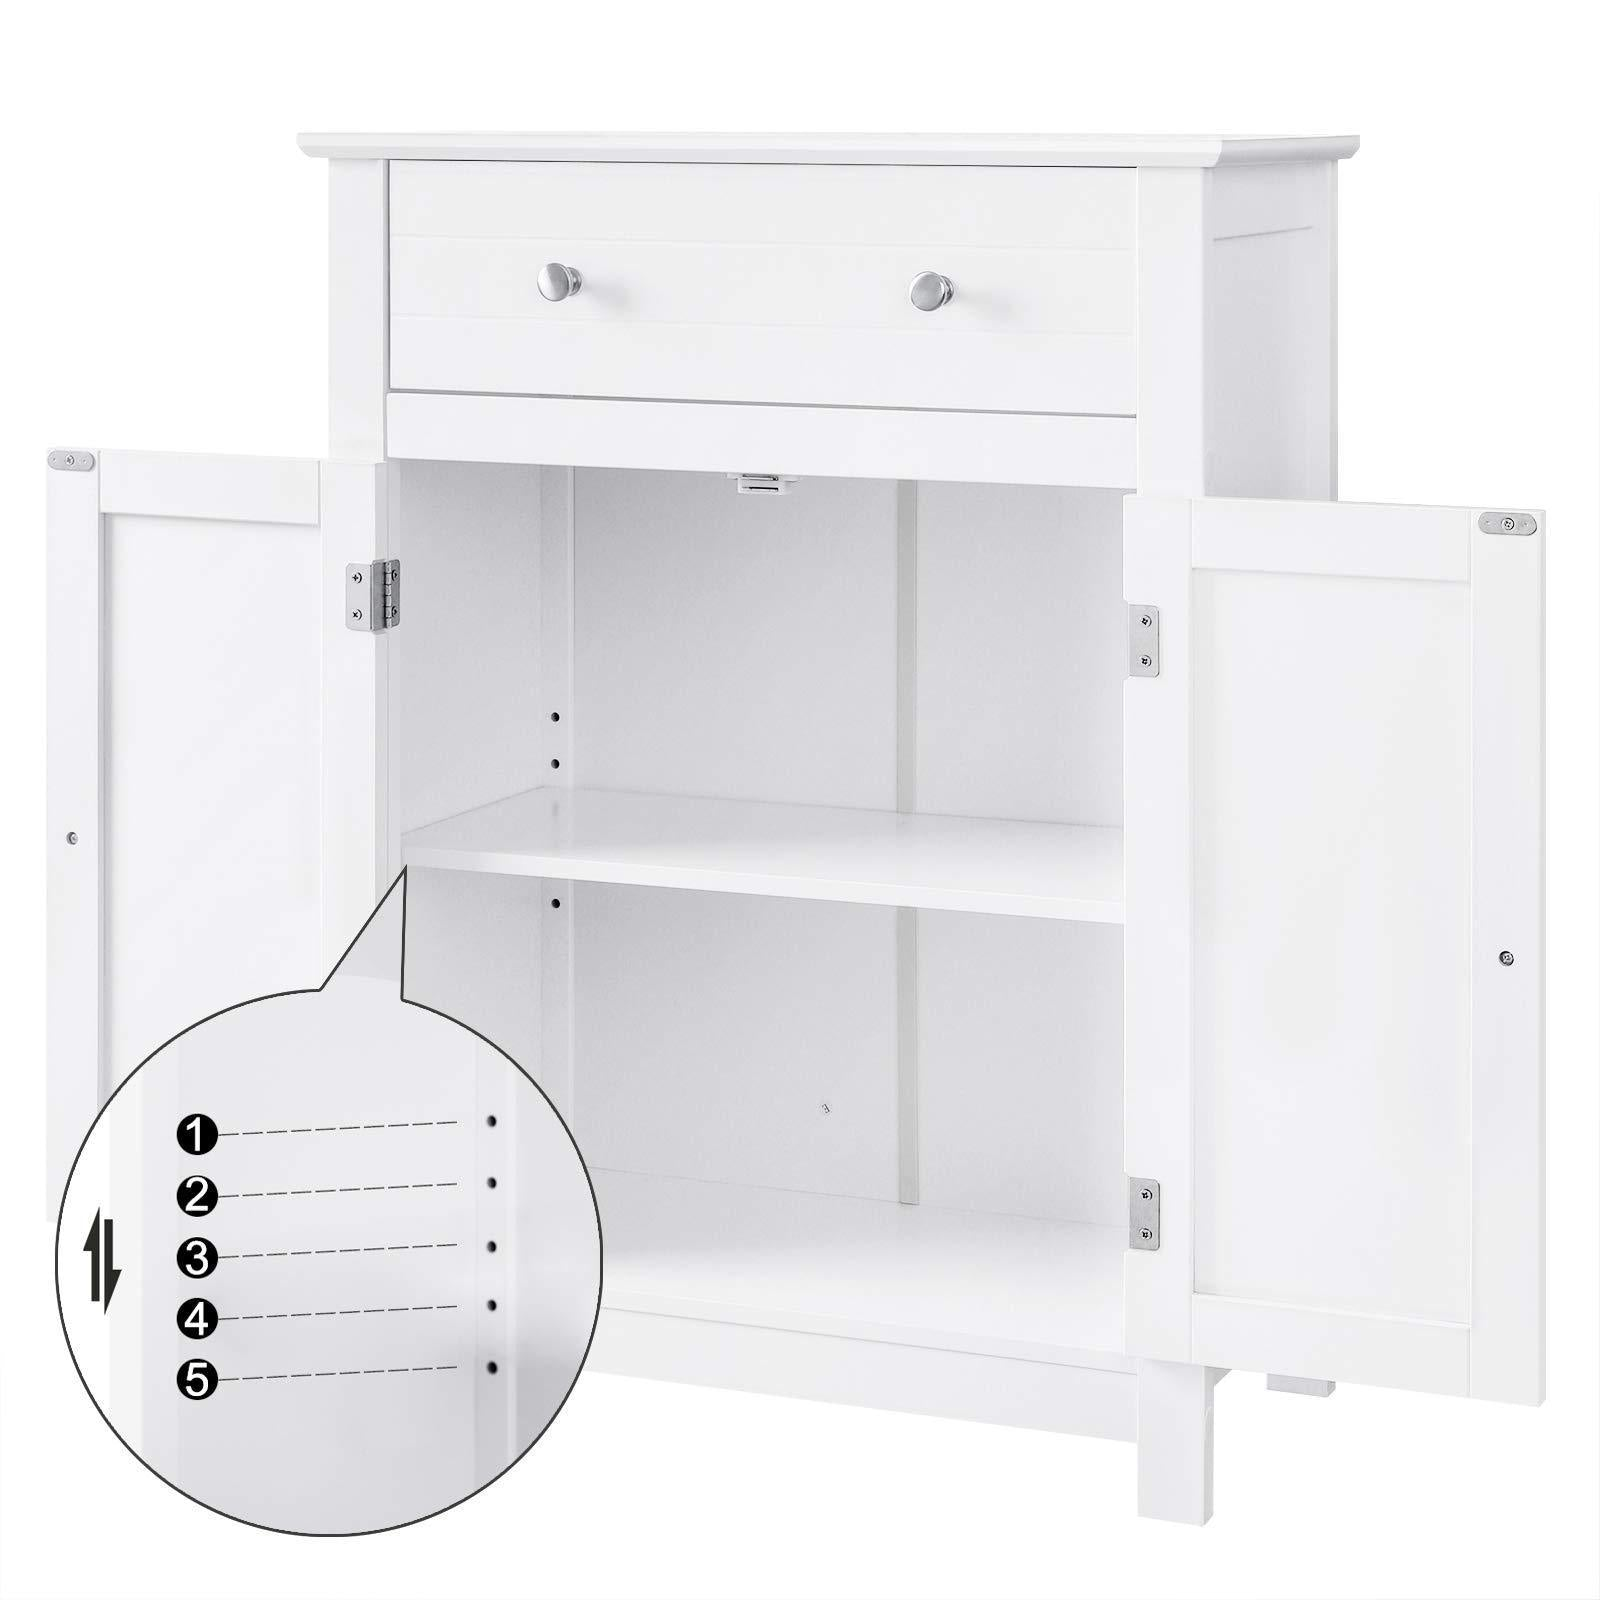 Top rated vasagle free standing bathroom cabinet with drawer and adjustable shelf kitchen cupboard wooden entryway storage cabinet white 23 6 x 11 8 x 31 5 inches ubbc61wt